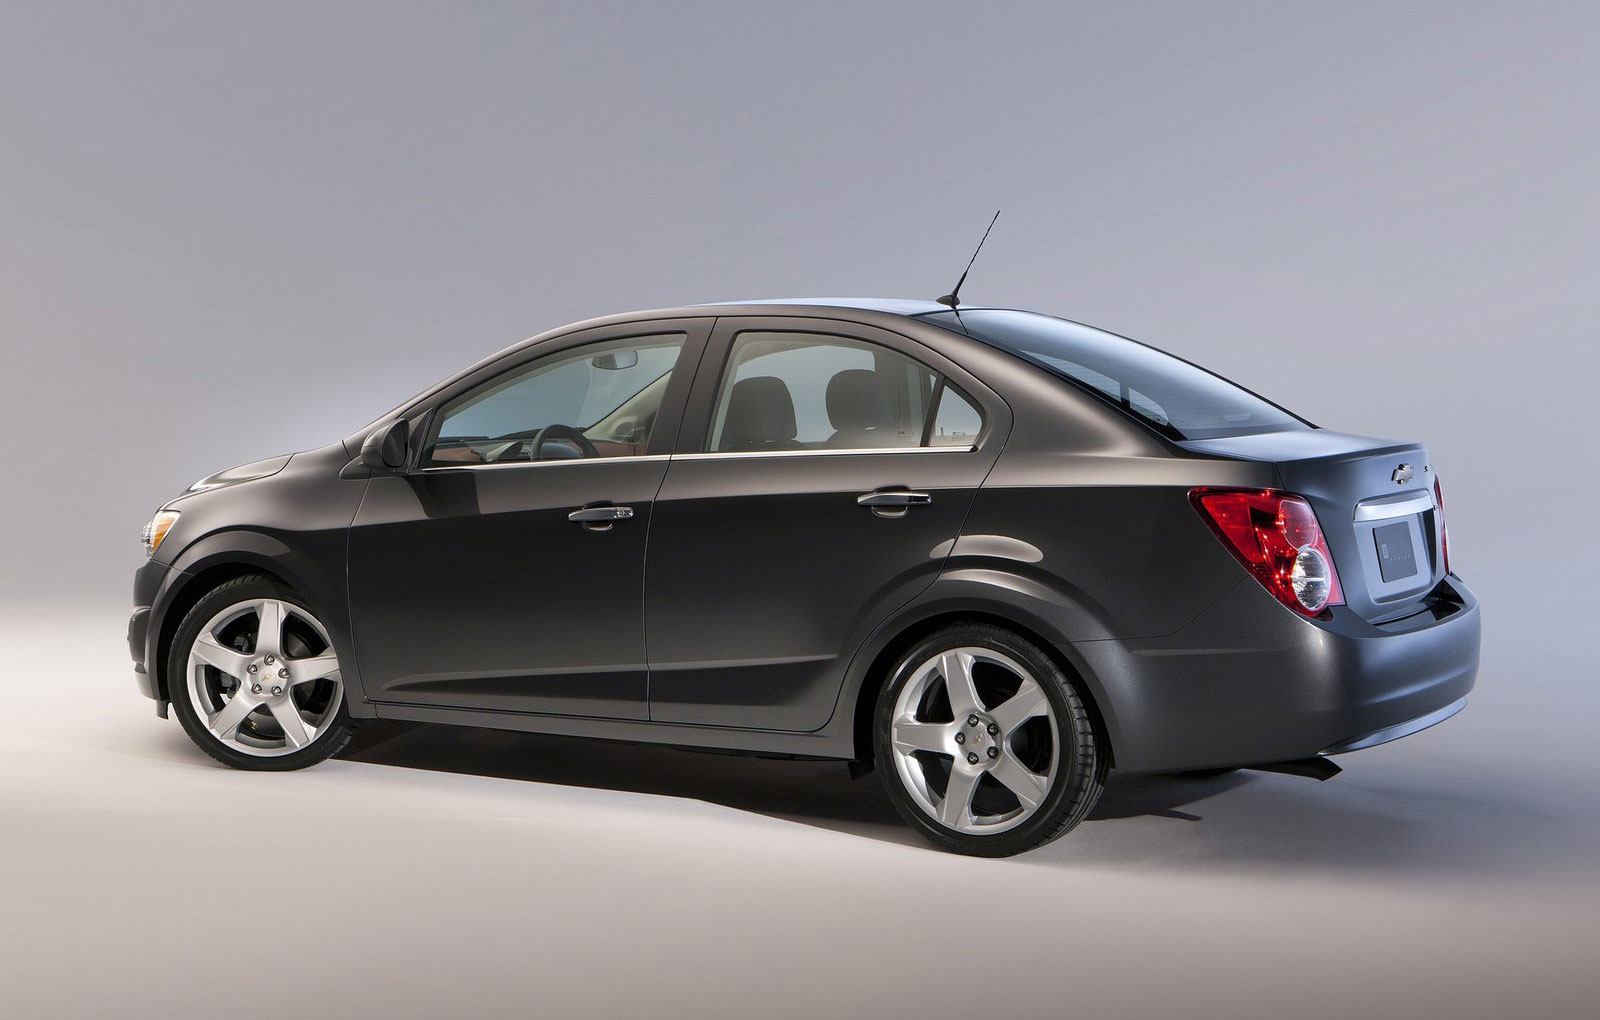 2012 Chevrolet Aveo Sedan Desktop Backgrounds Free